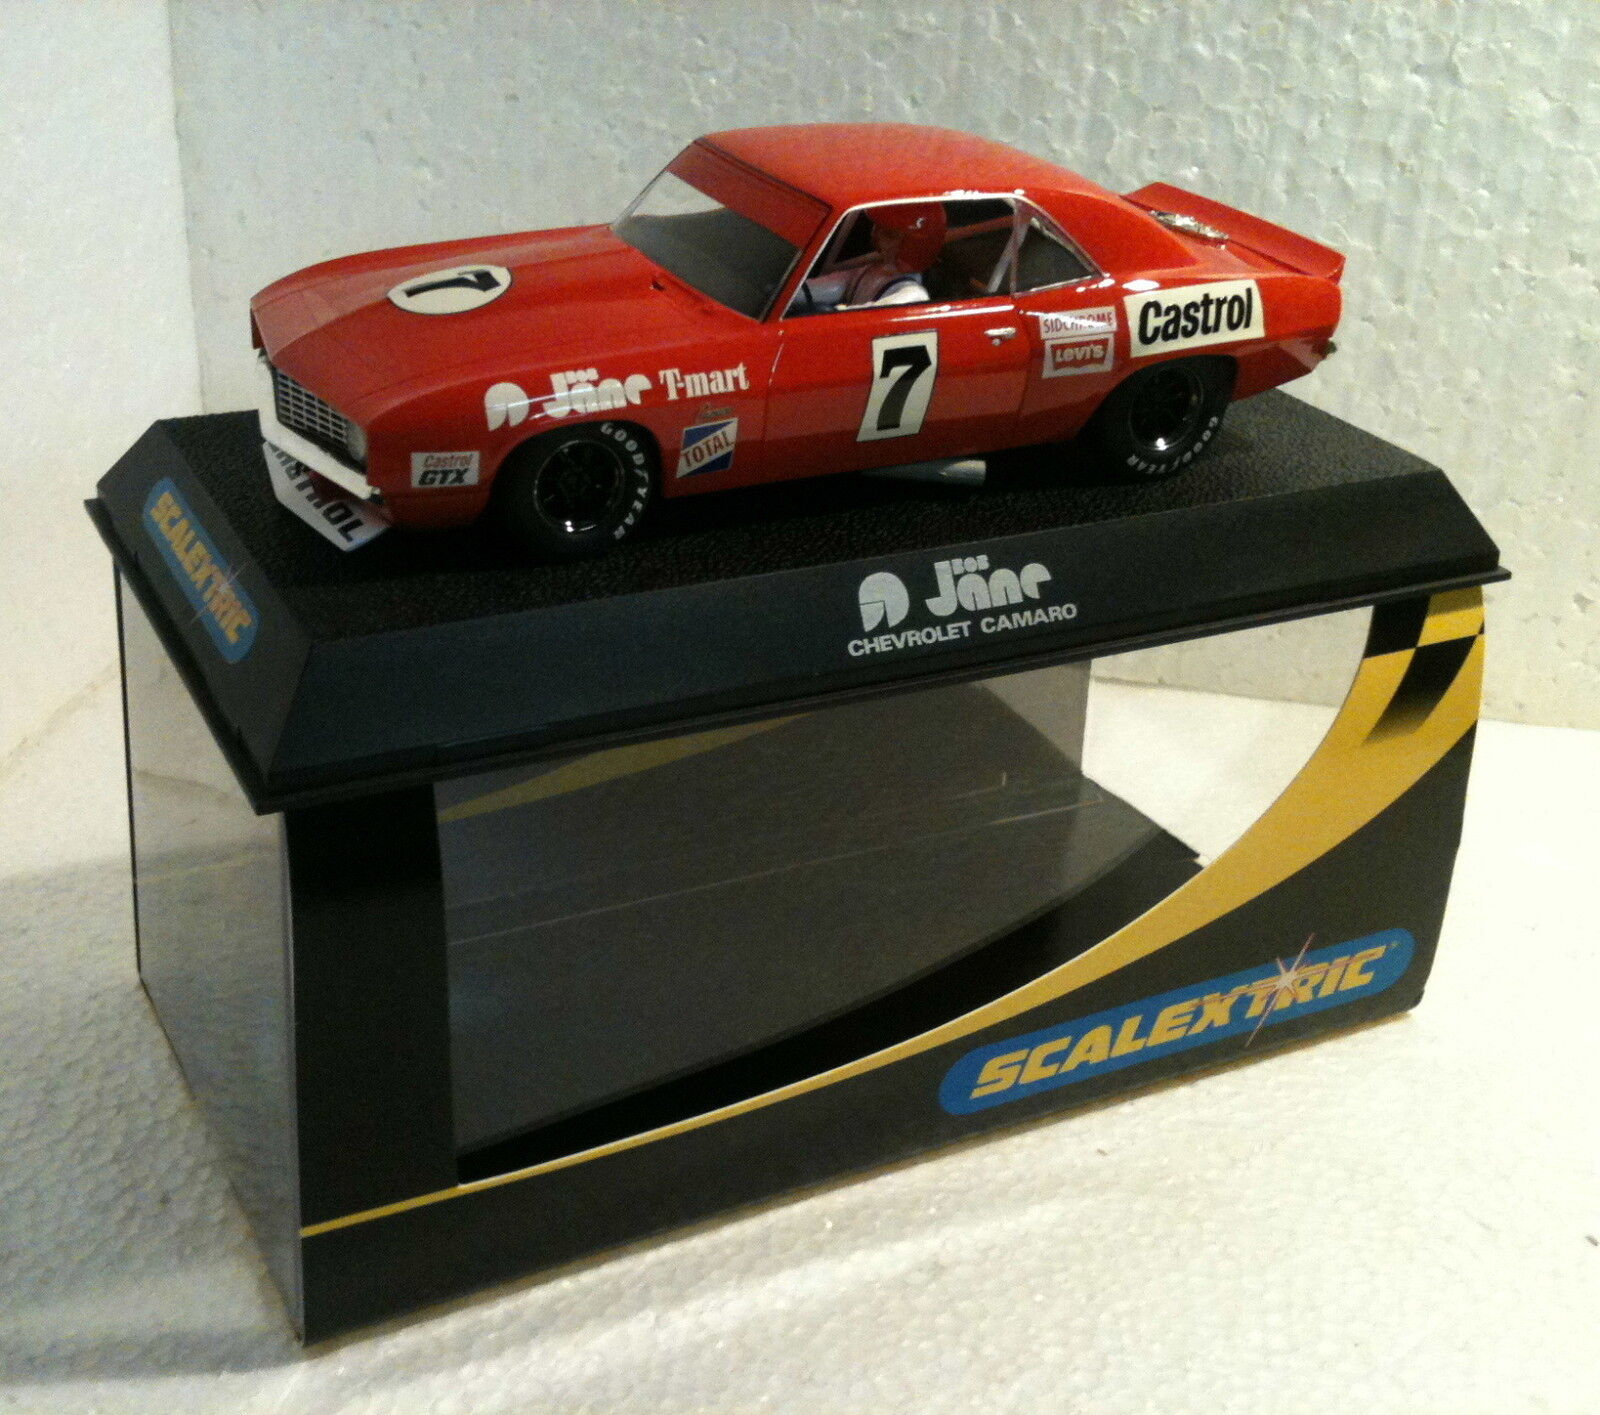 Felices compras qq C 2413 SCALEXTRIC CHEVROLET CHEVROLET CHEVROLET CAMARO BOB JANE No7 T-MARS LTED ED 1500 units  mejor moda